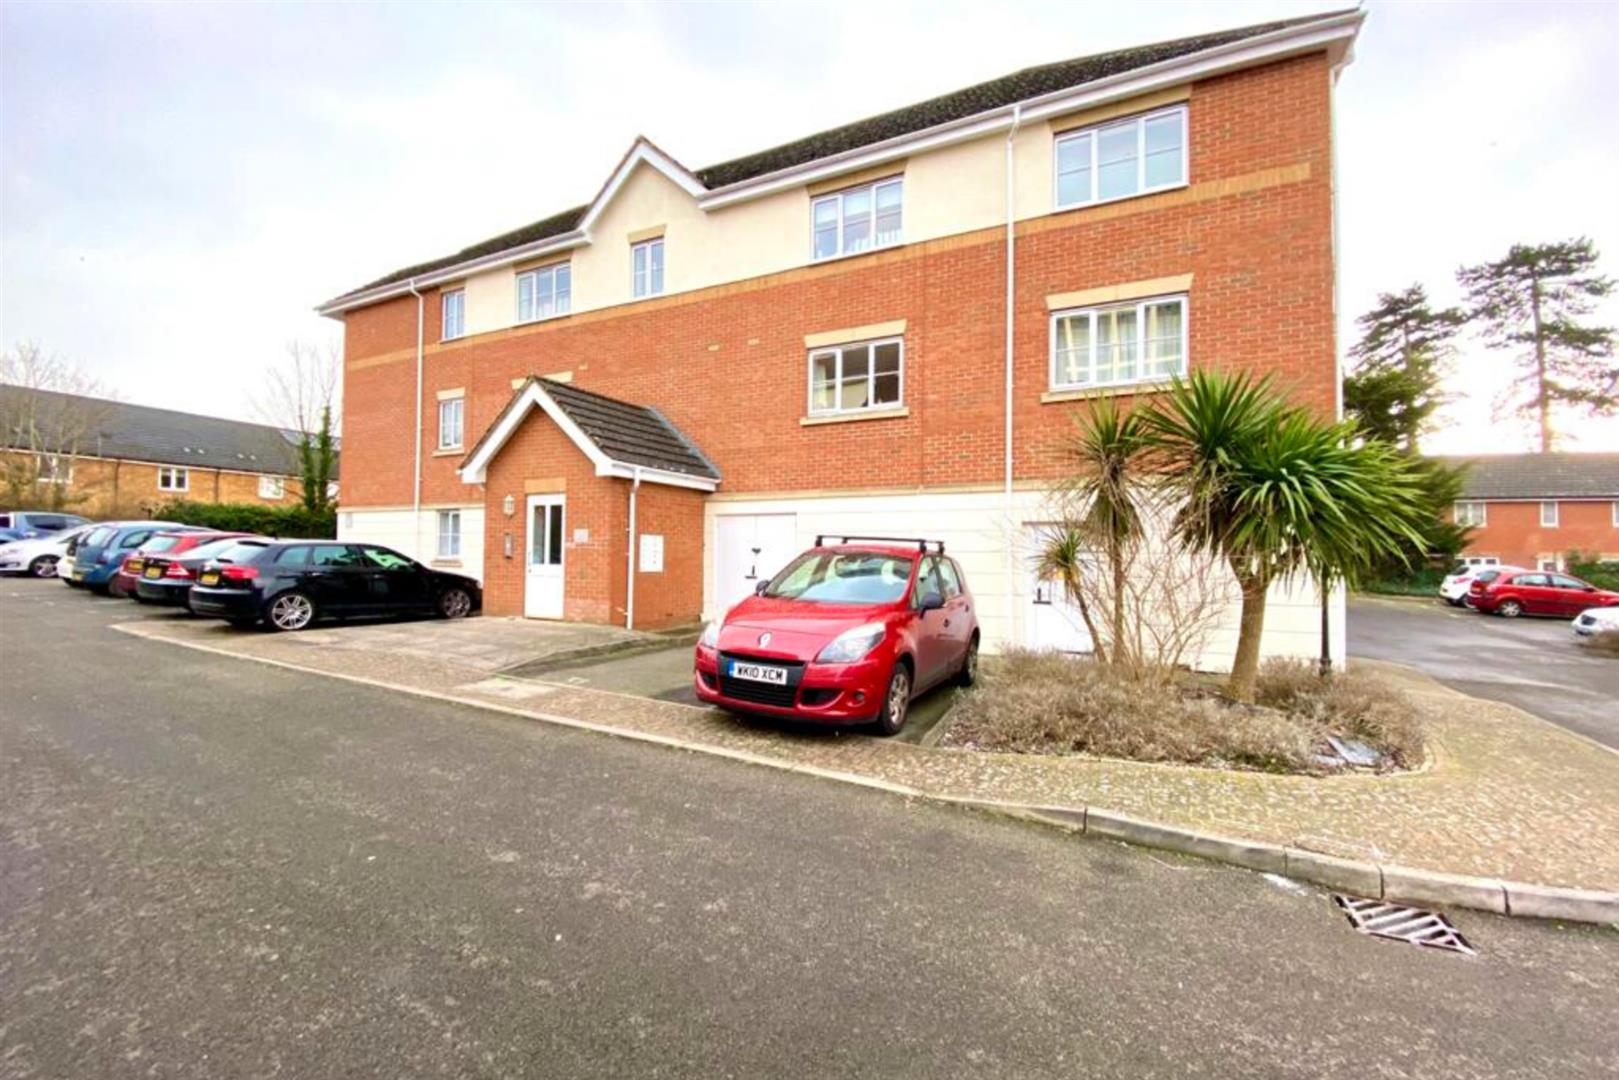 2 bed apartment for sale in Basingstoke Road, RG2